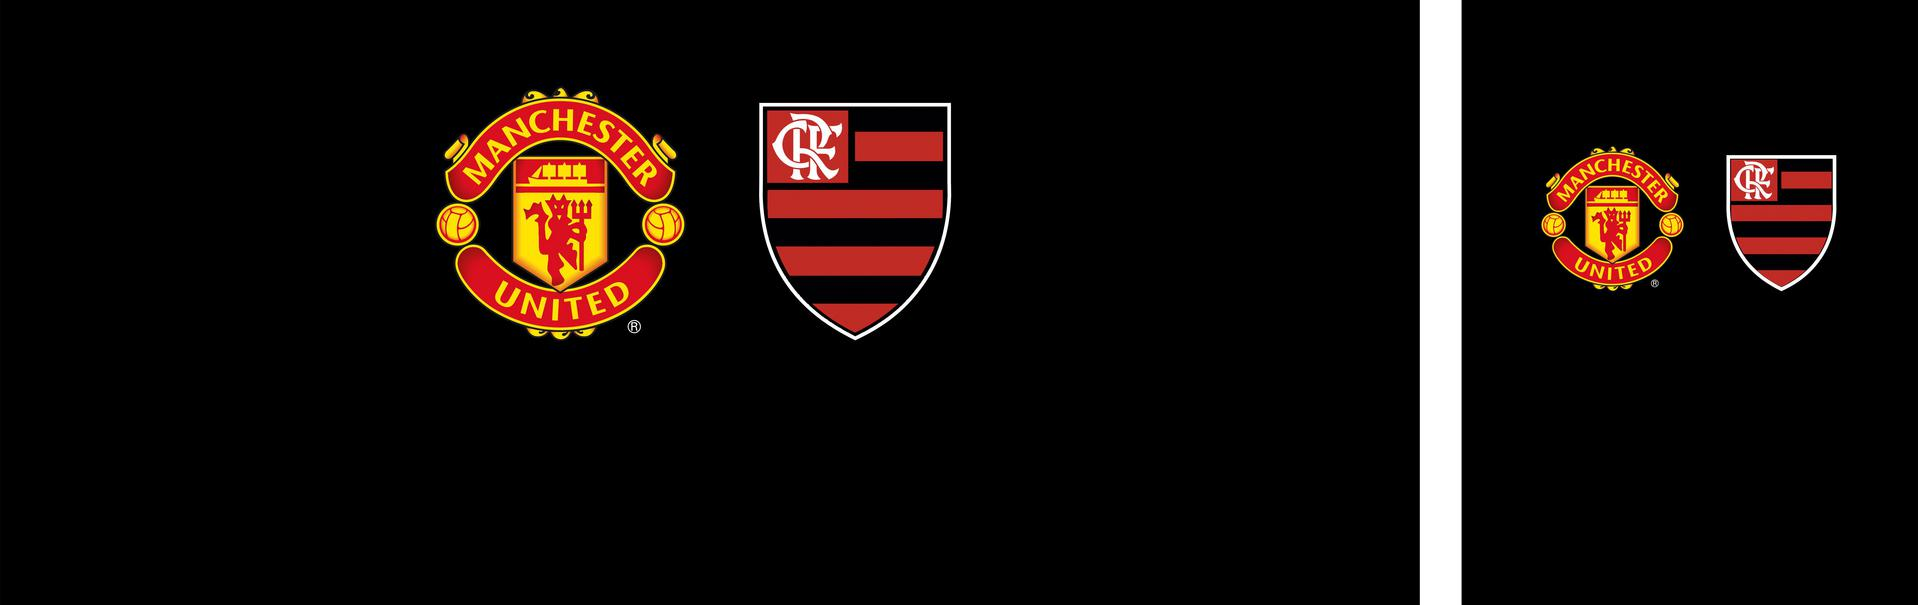 Flamengo FC and Manchester United crests.